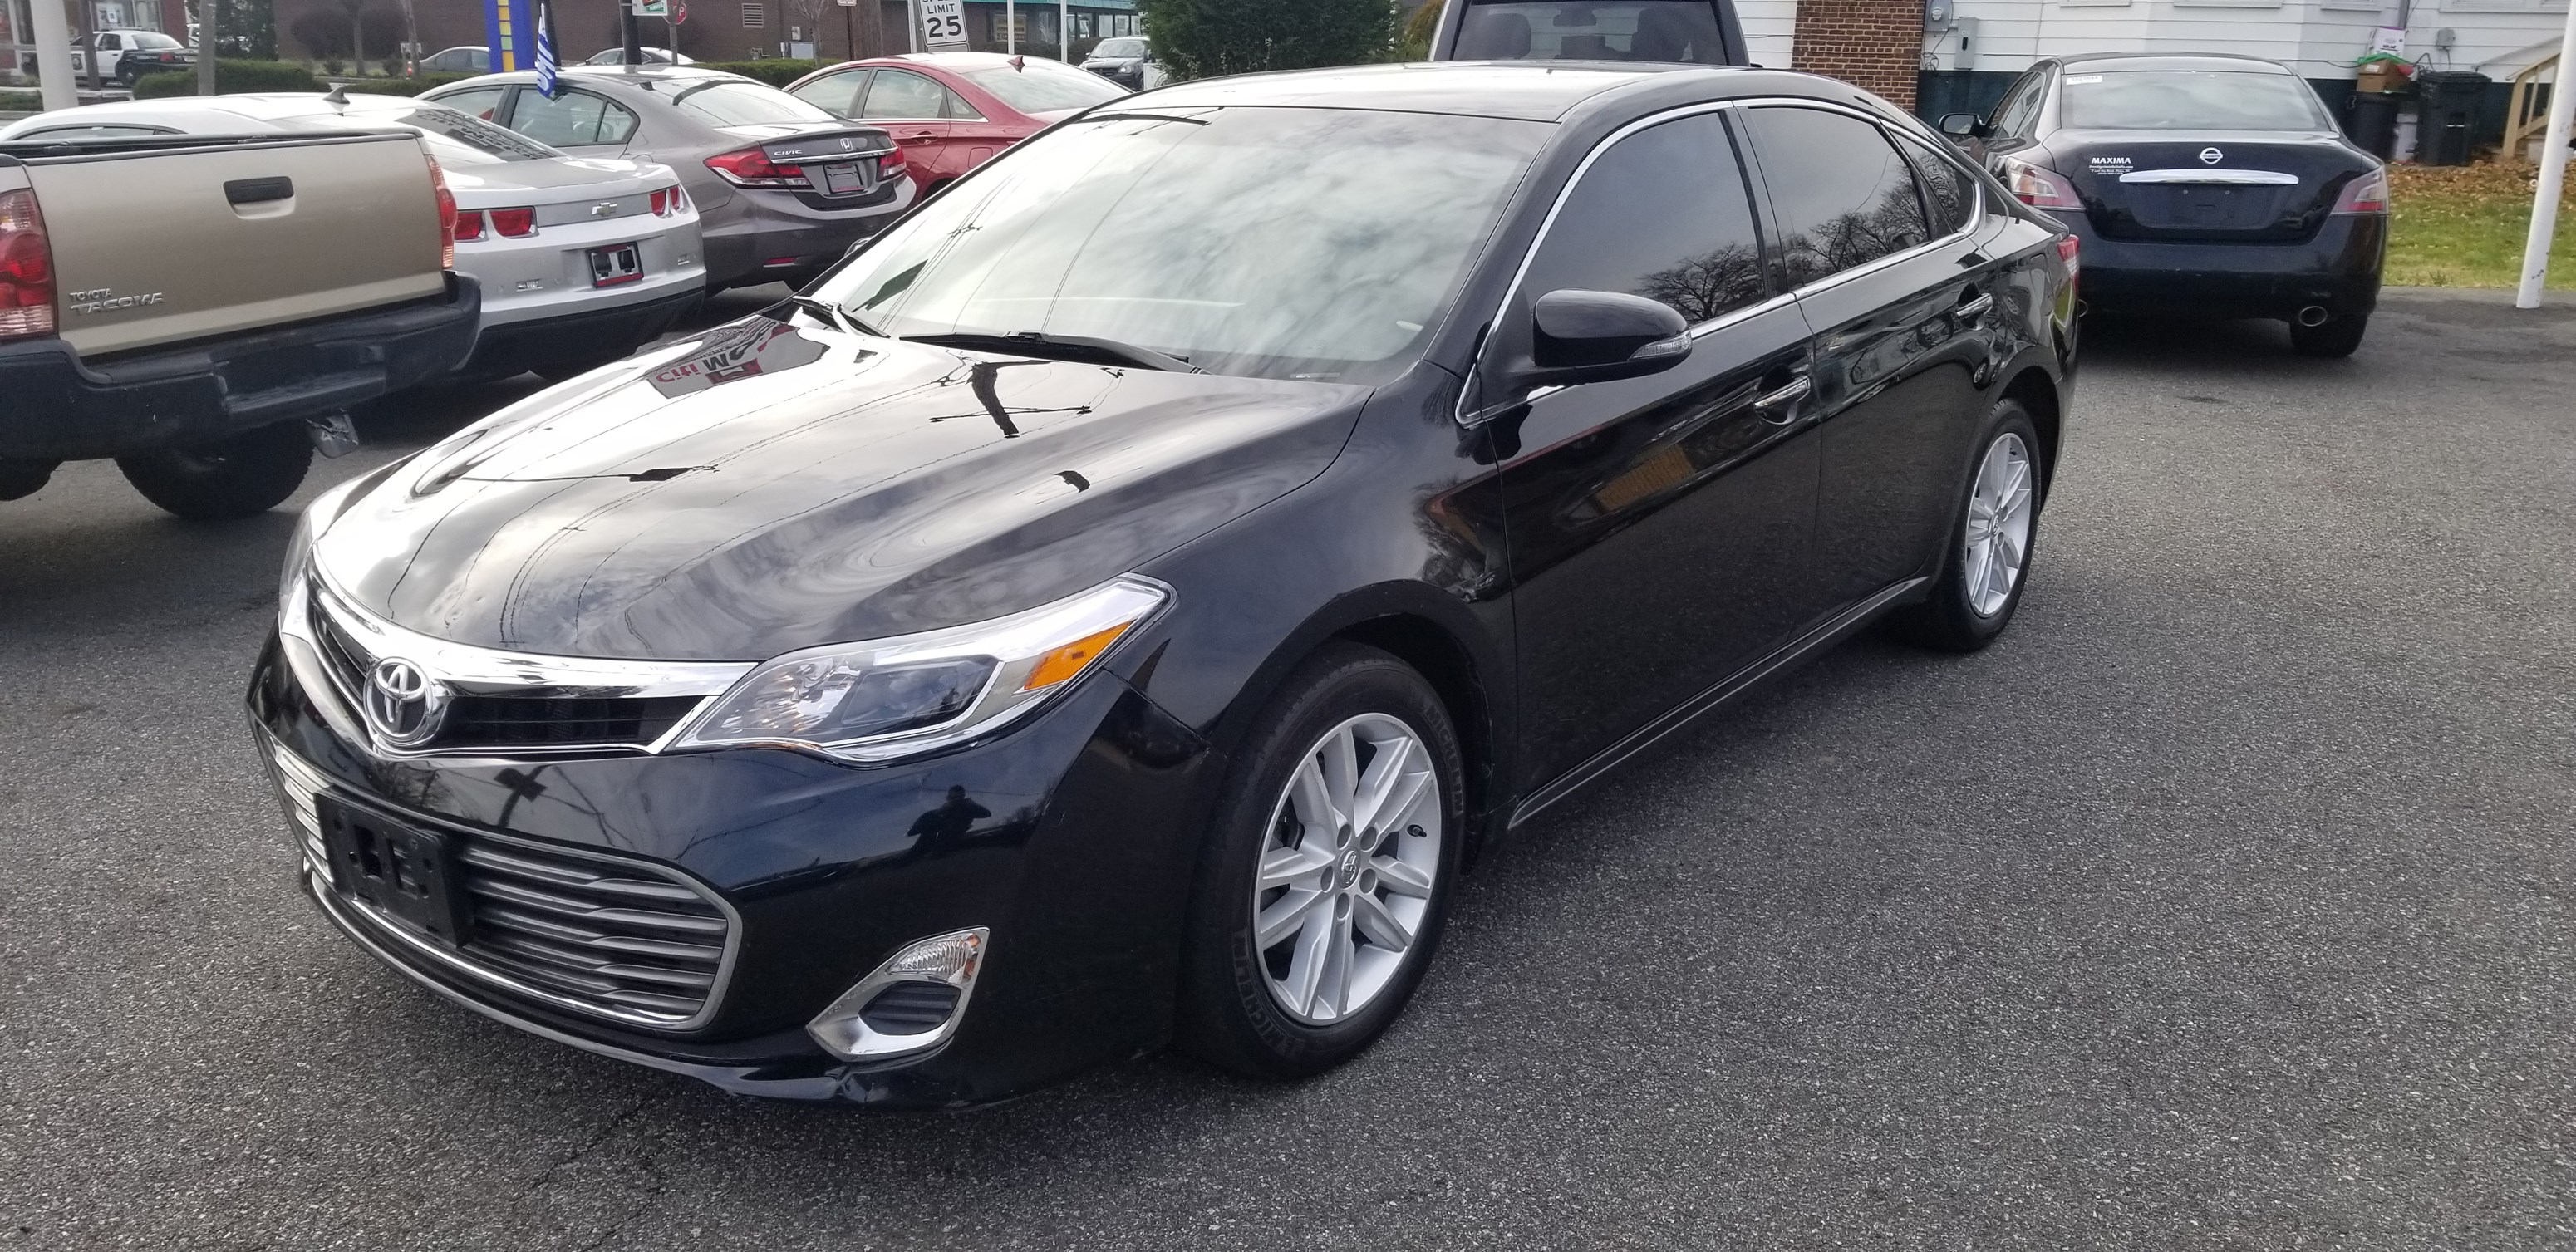 2015 toyota avalon xle 3 5l v6 clean carfax 1 owner under warranty back up camera bluetooth leather w heated seats